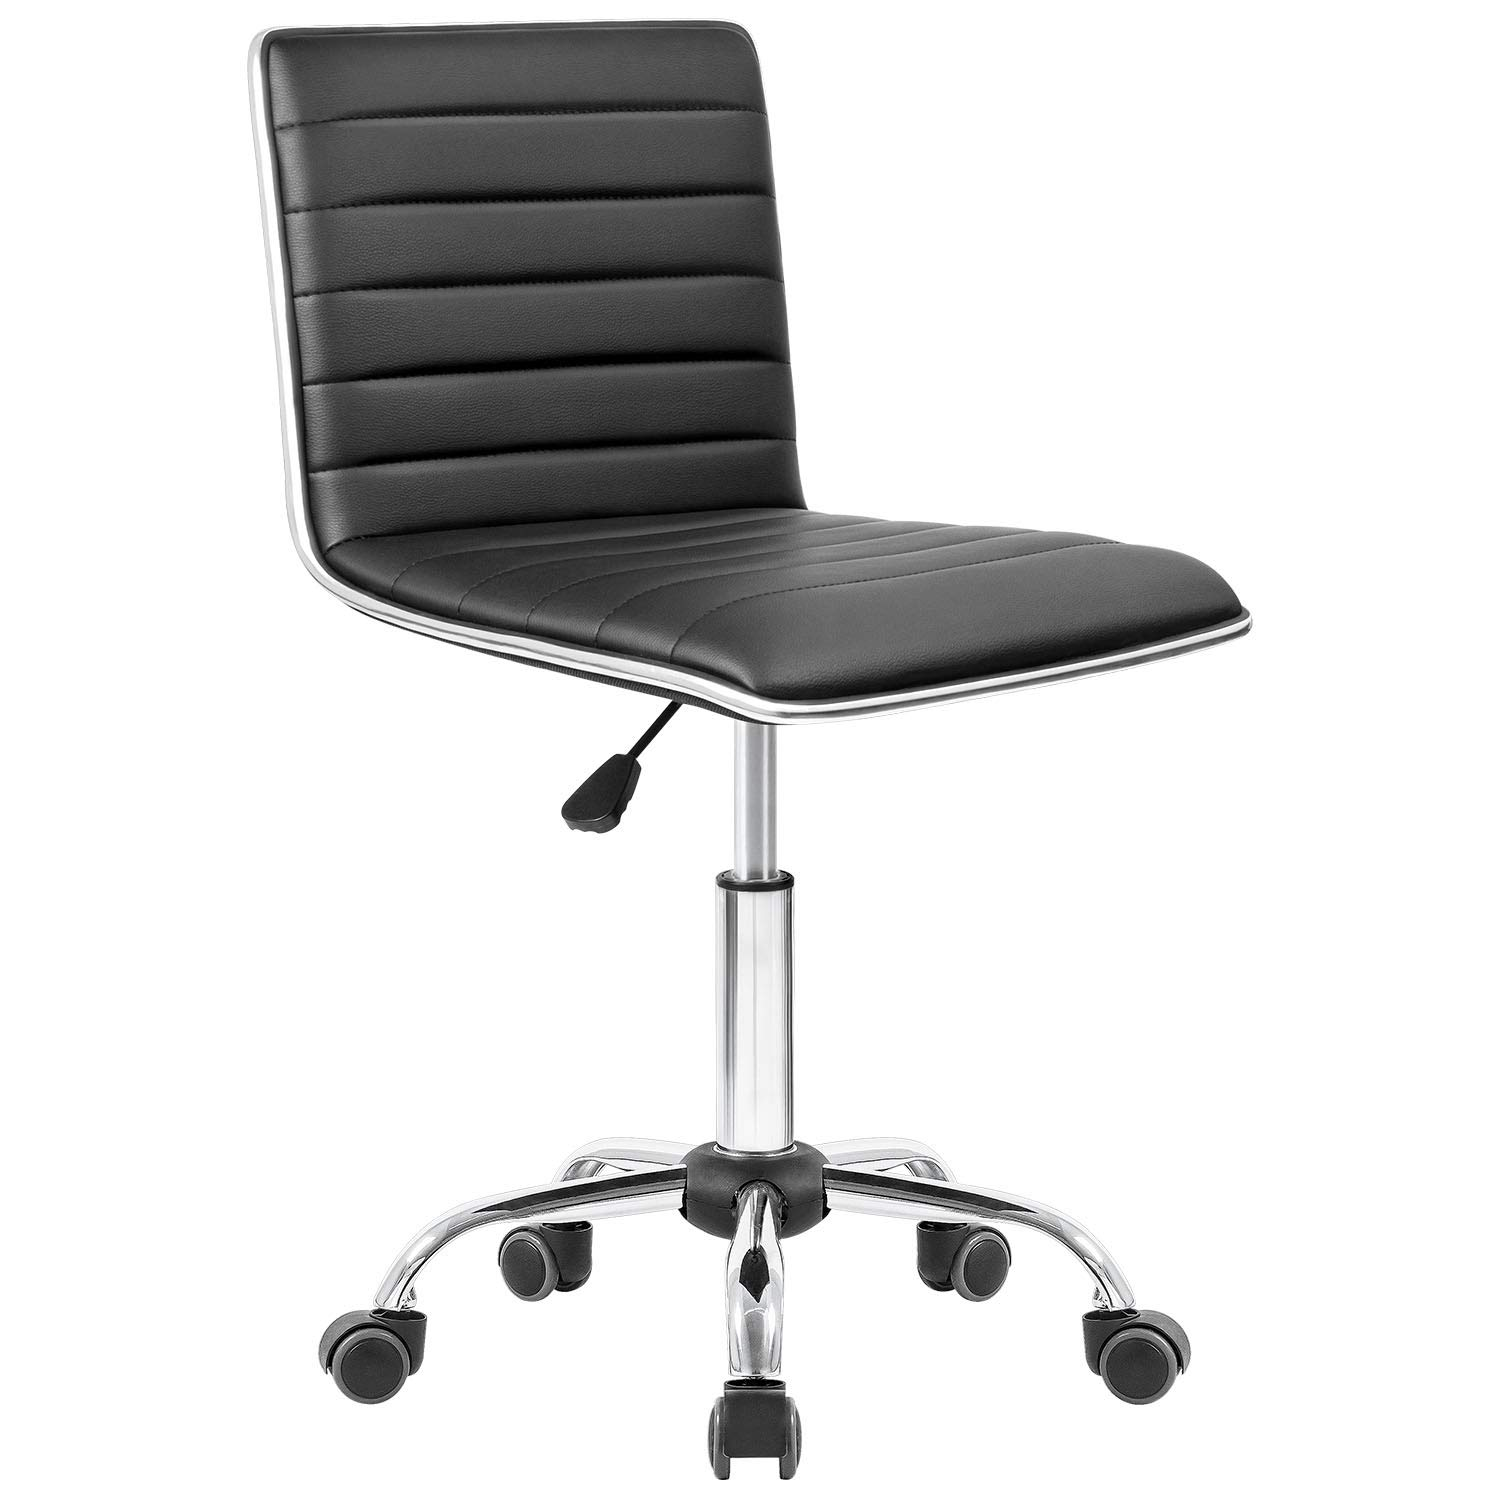 Homall Swivel Task Chair Desk Chair, Leather Vanity Computer Office Chair Rolling Adjustable Conference Chair Ribbed and Armless Chair Makeup Chair with Back Support(Black) by Homall (Image #1)